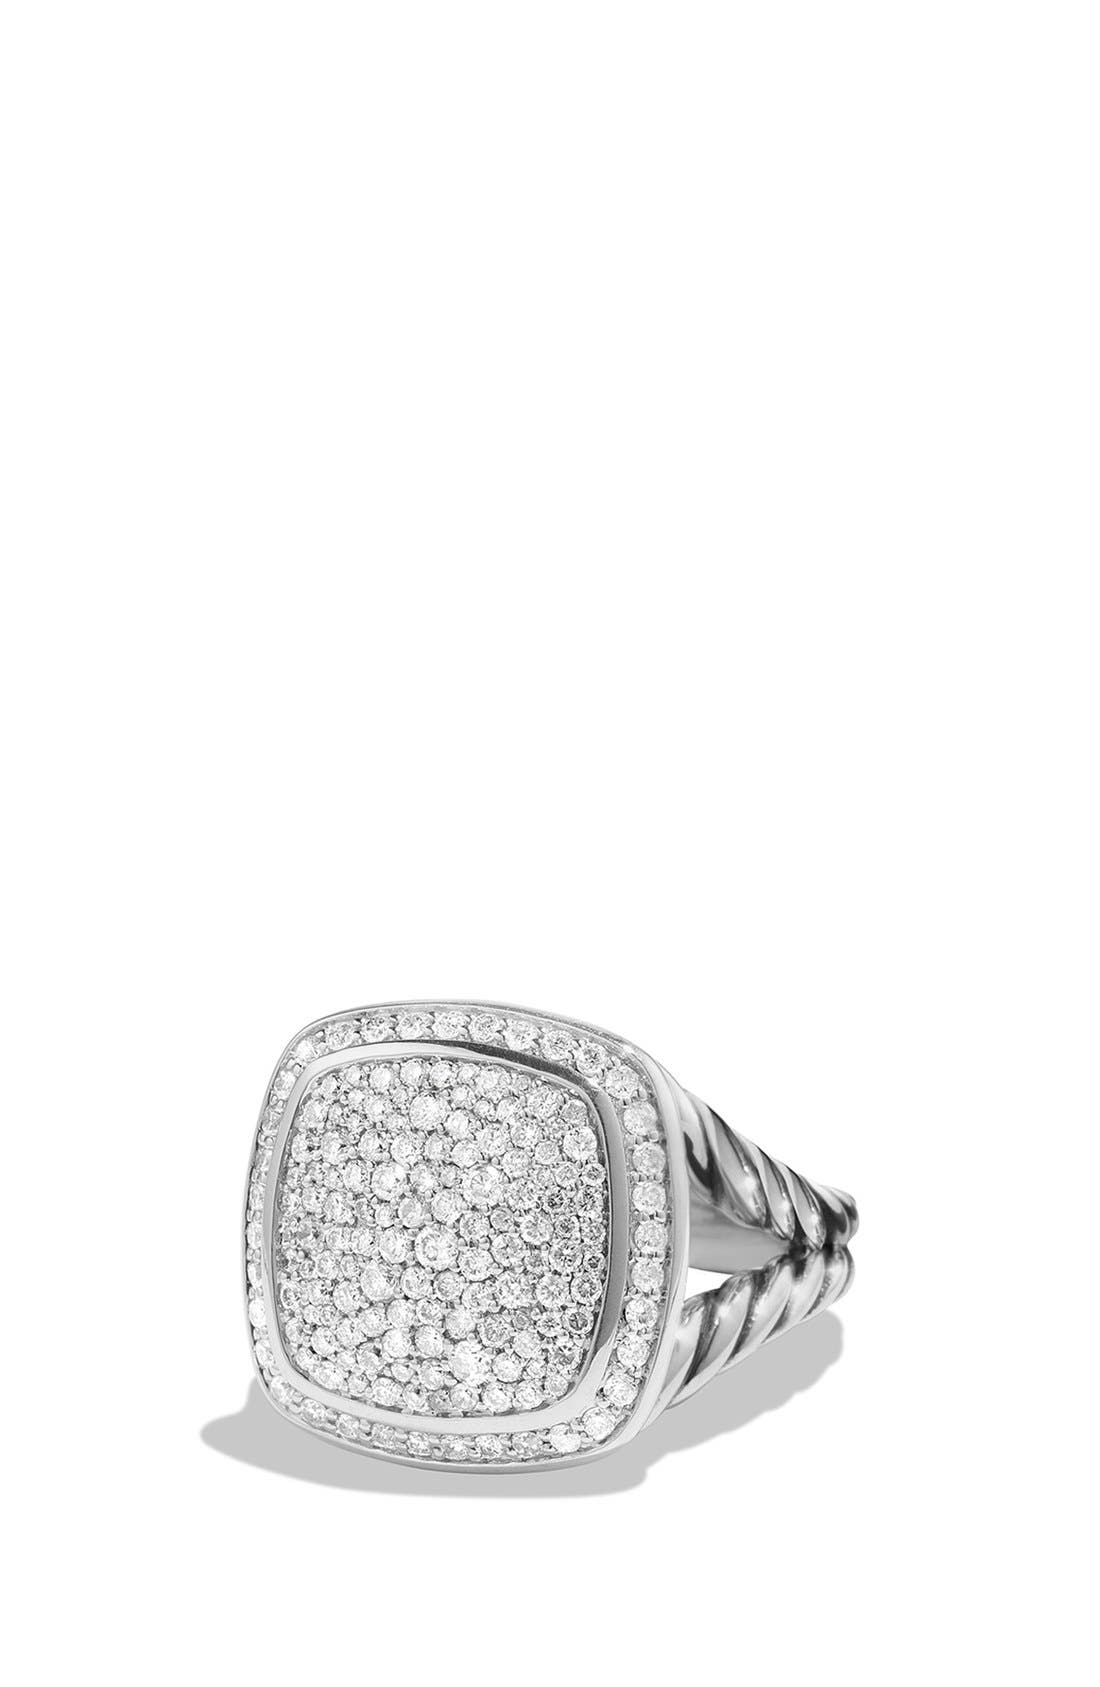 Main Image - David Yurman 'Albion' Ring with Diamonds